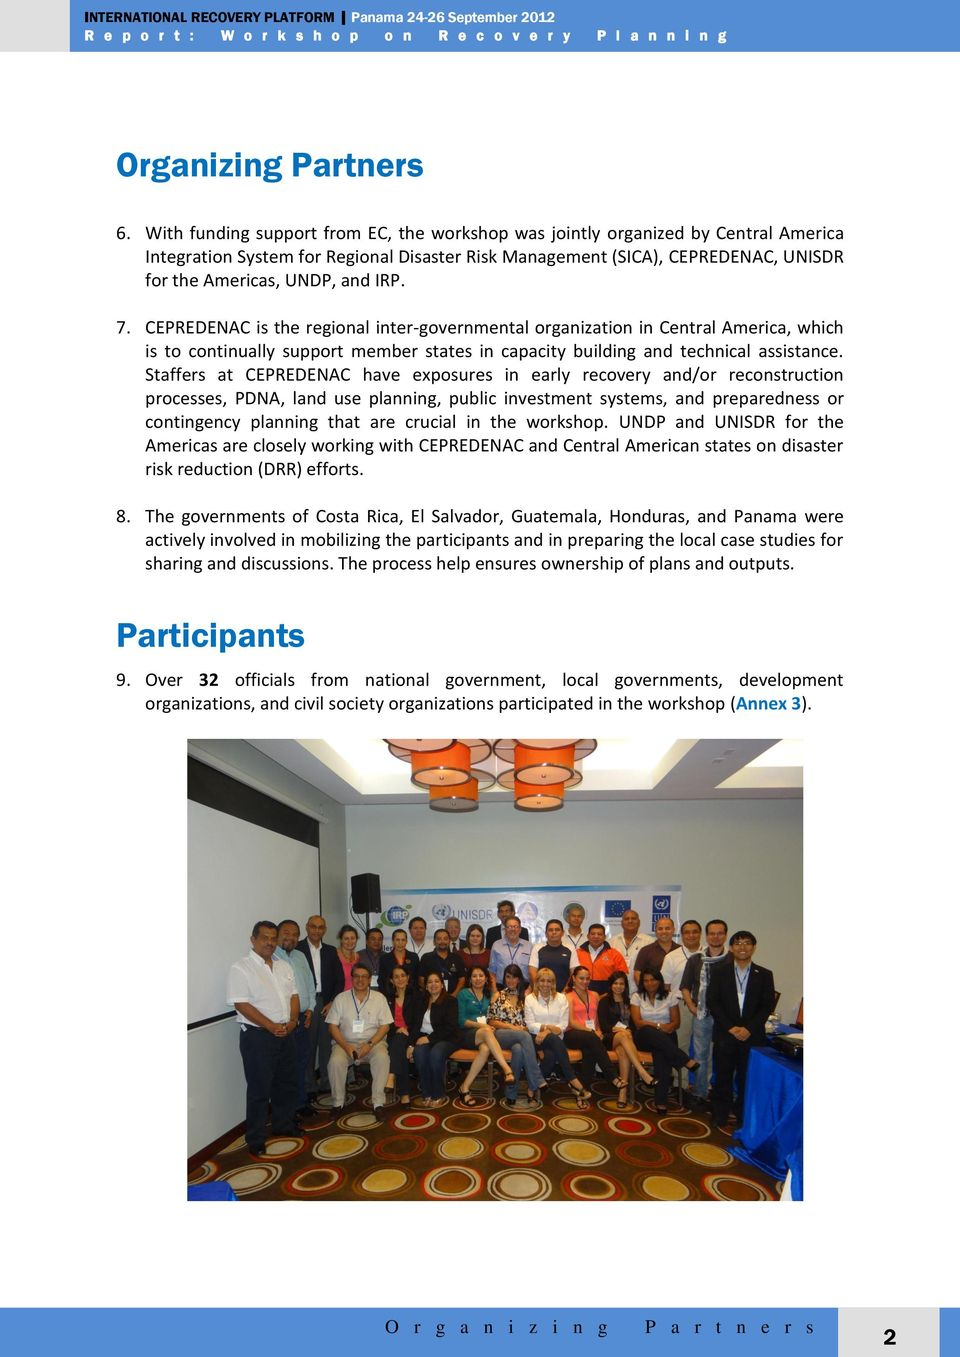 7. CEPREDENAC is the regional inter-governmental organization in Central America, which is to continually support member states in capacity building and technical assistance.